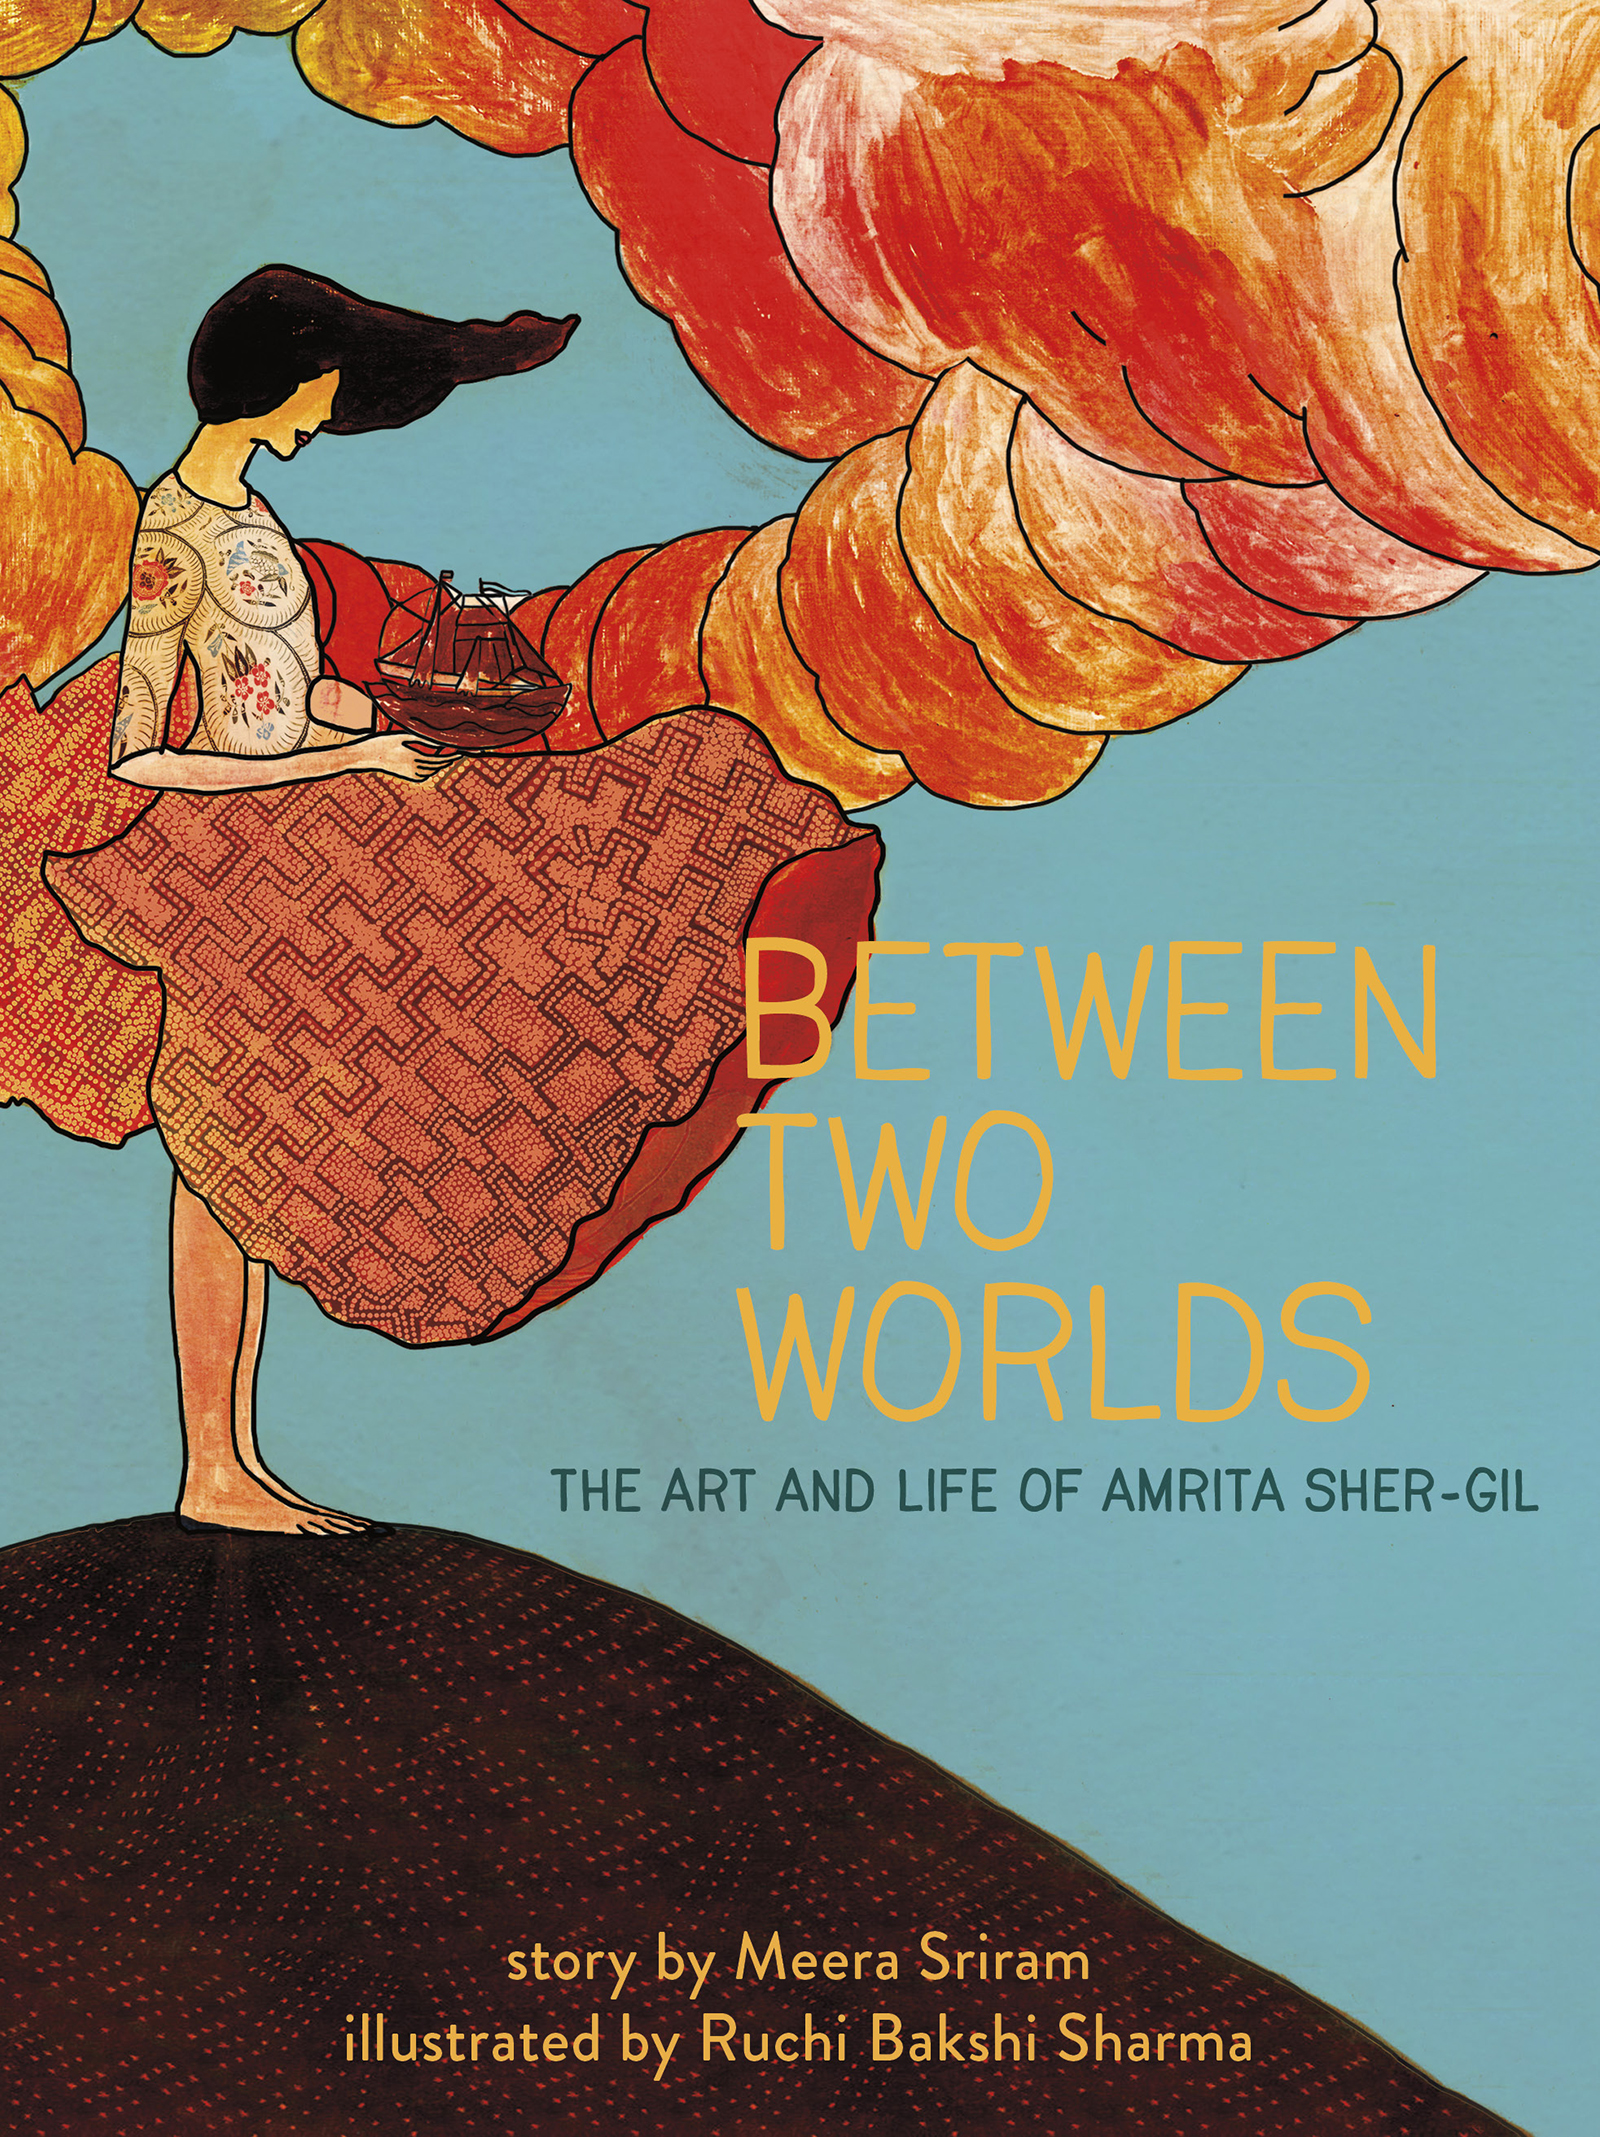 WNDMG: South Asian Picture Book Biography: Meera Sriram talks about BETWEEN TWO WORLDS: THE ART & LIFE OF AMRITA SHER-GIL